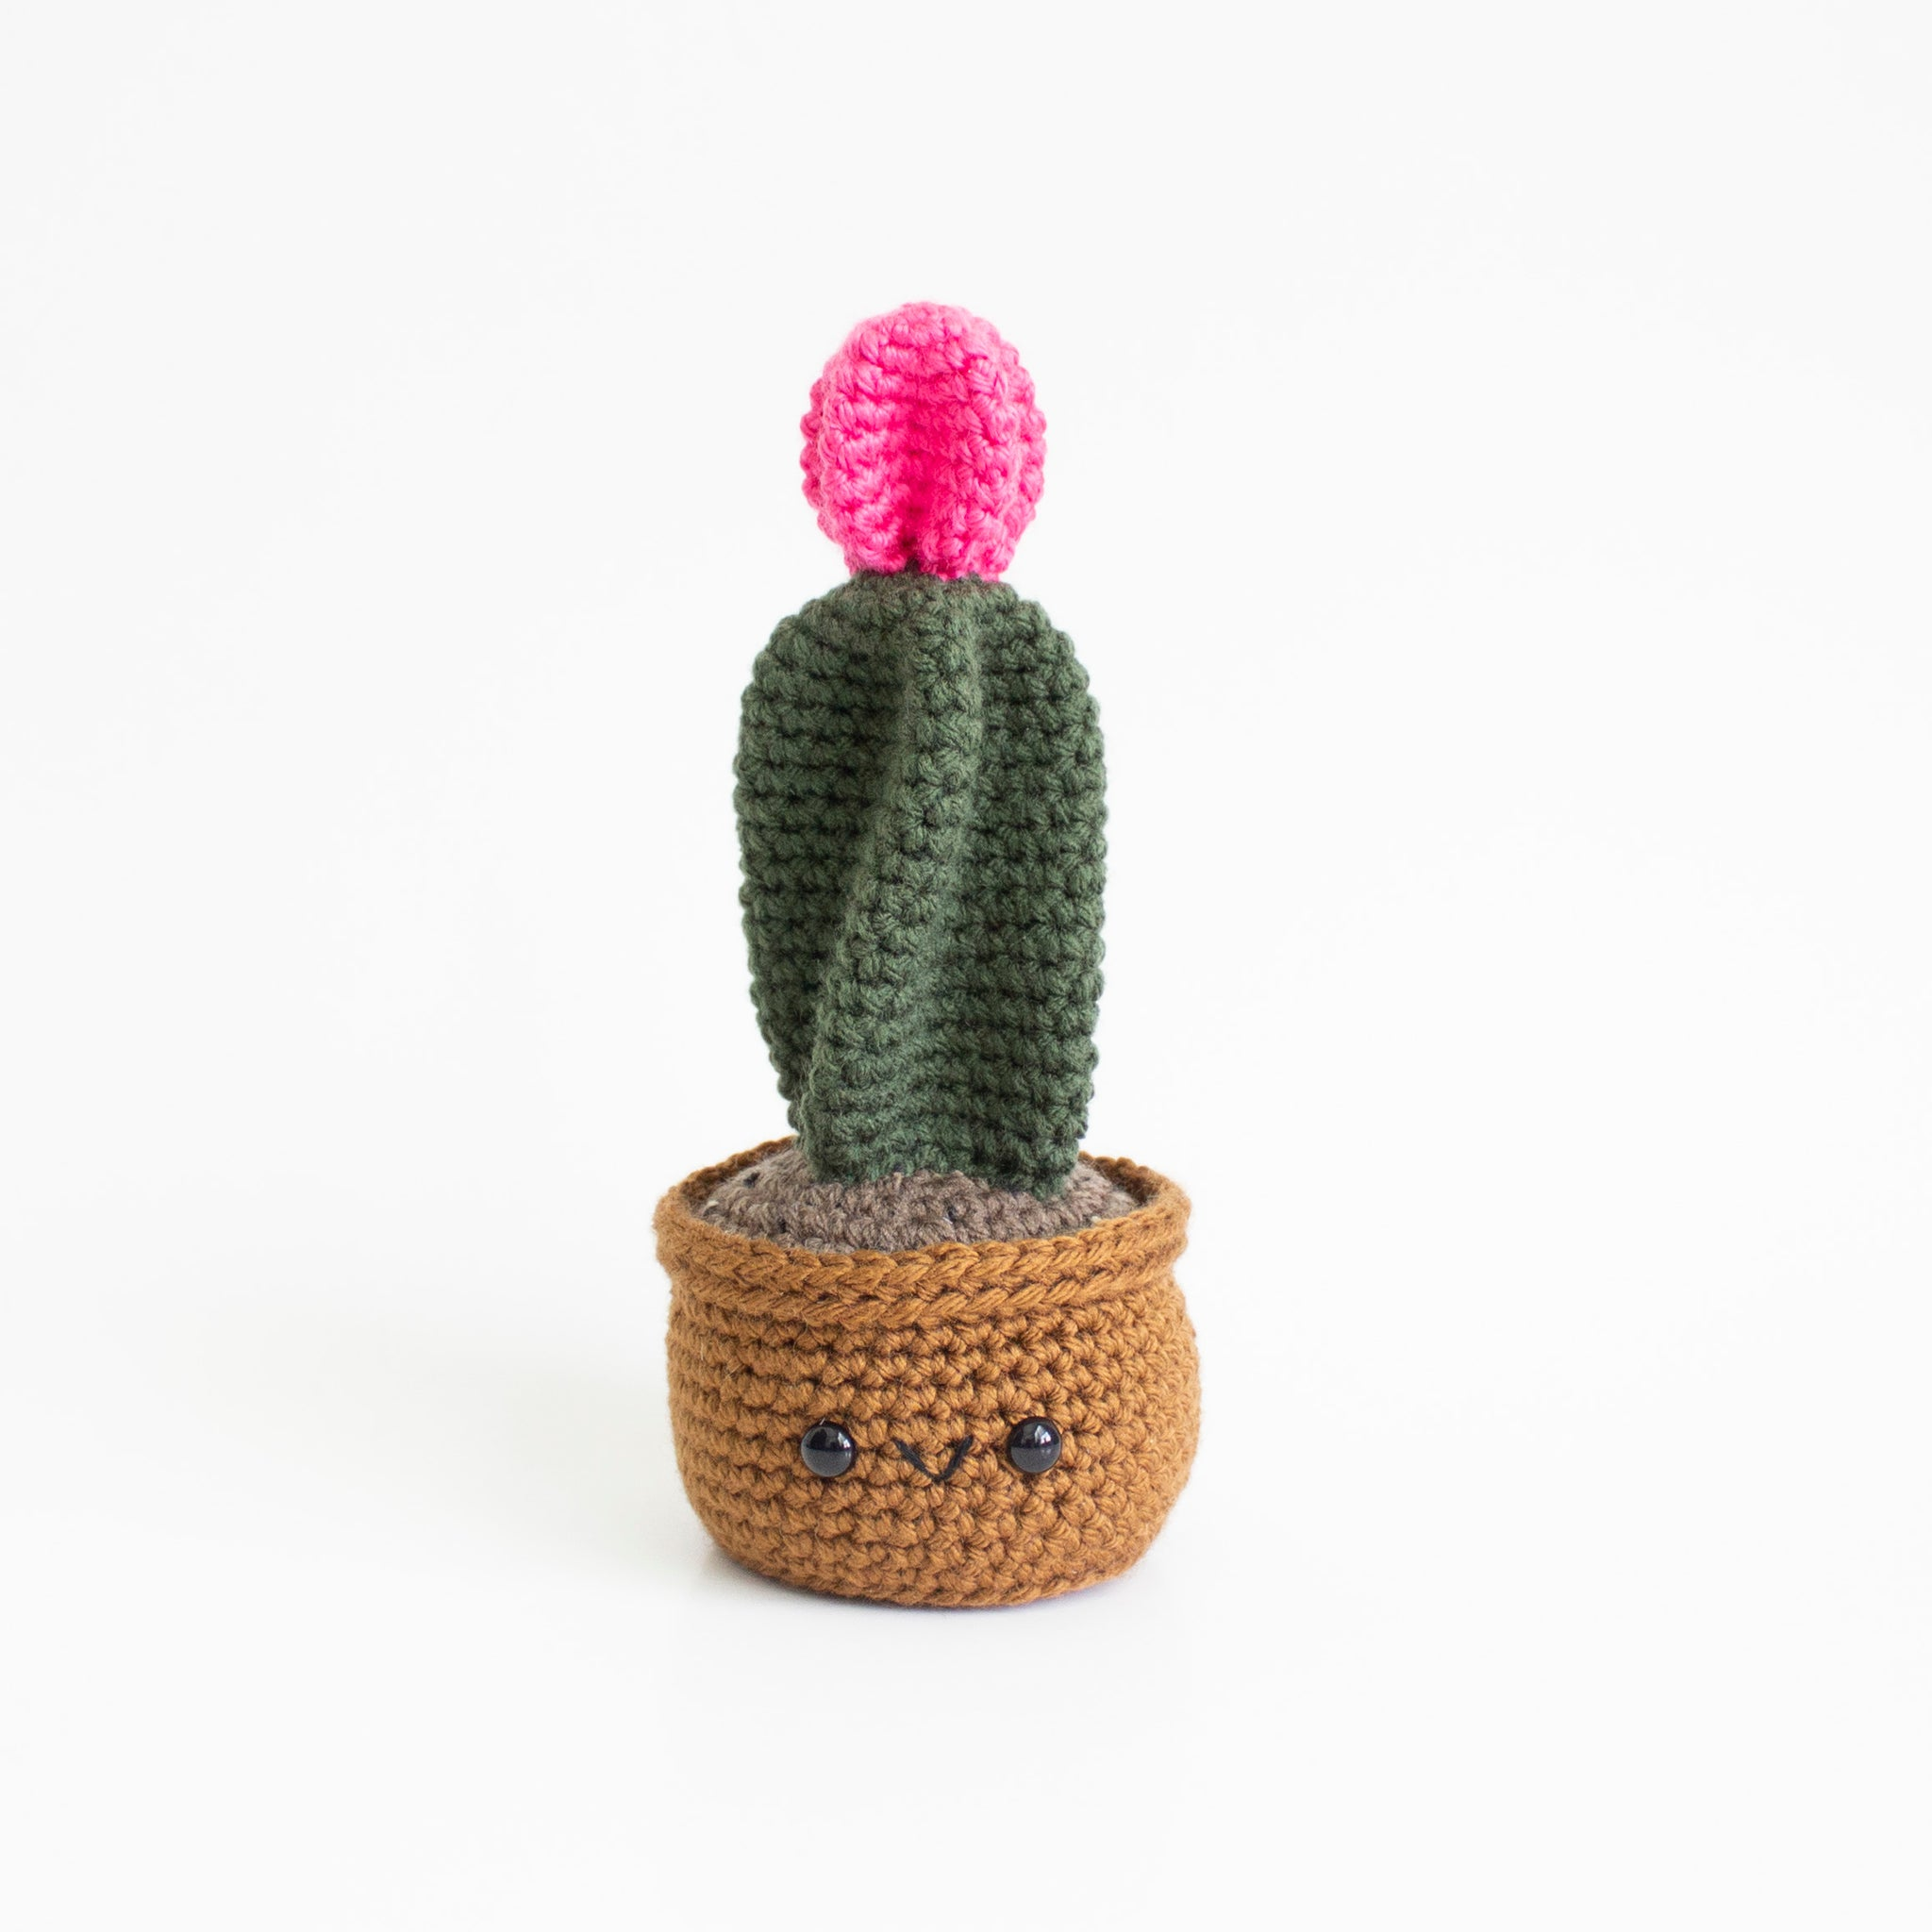 Crochet Amigurumi Pink Moon Ball Cactus- MADE TO ORDER